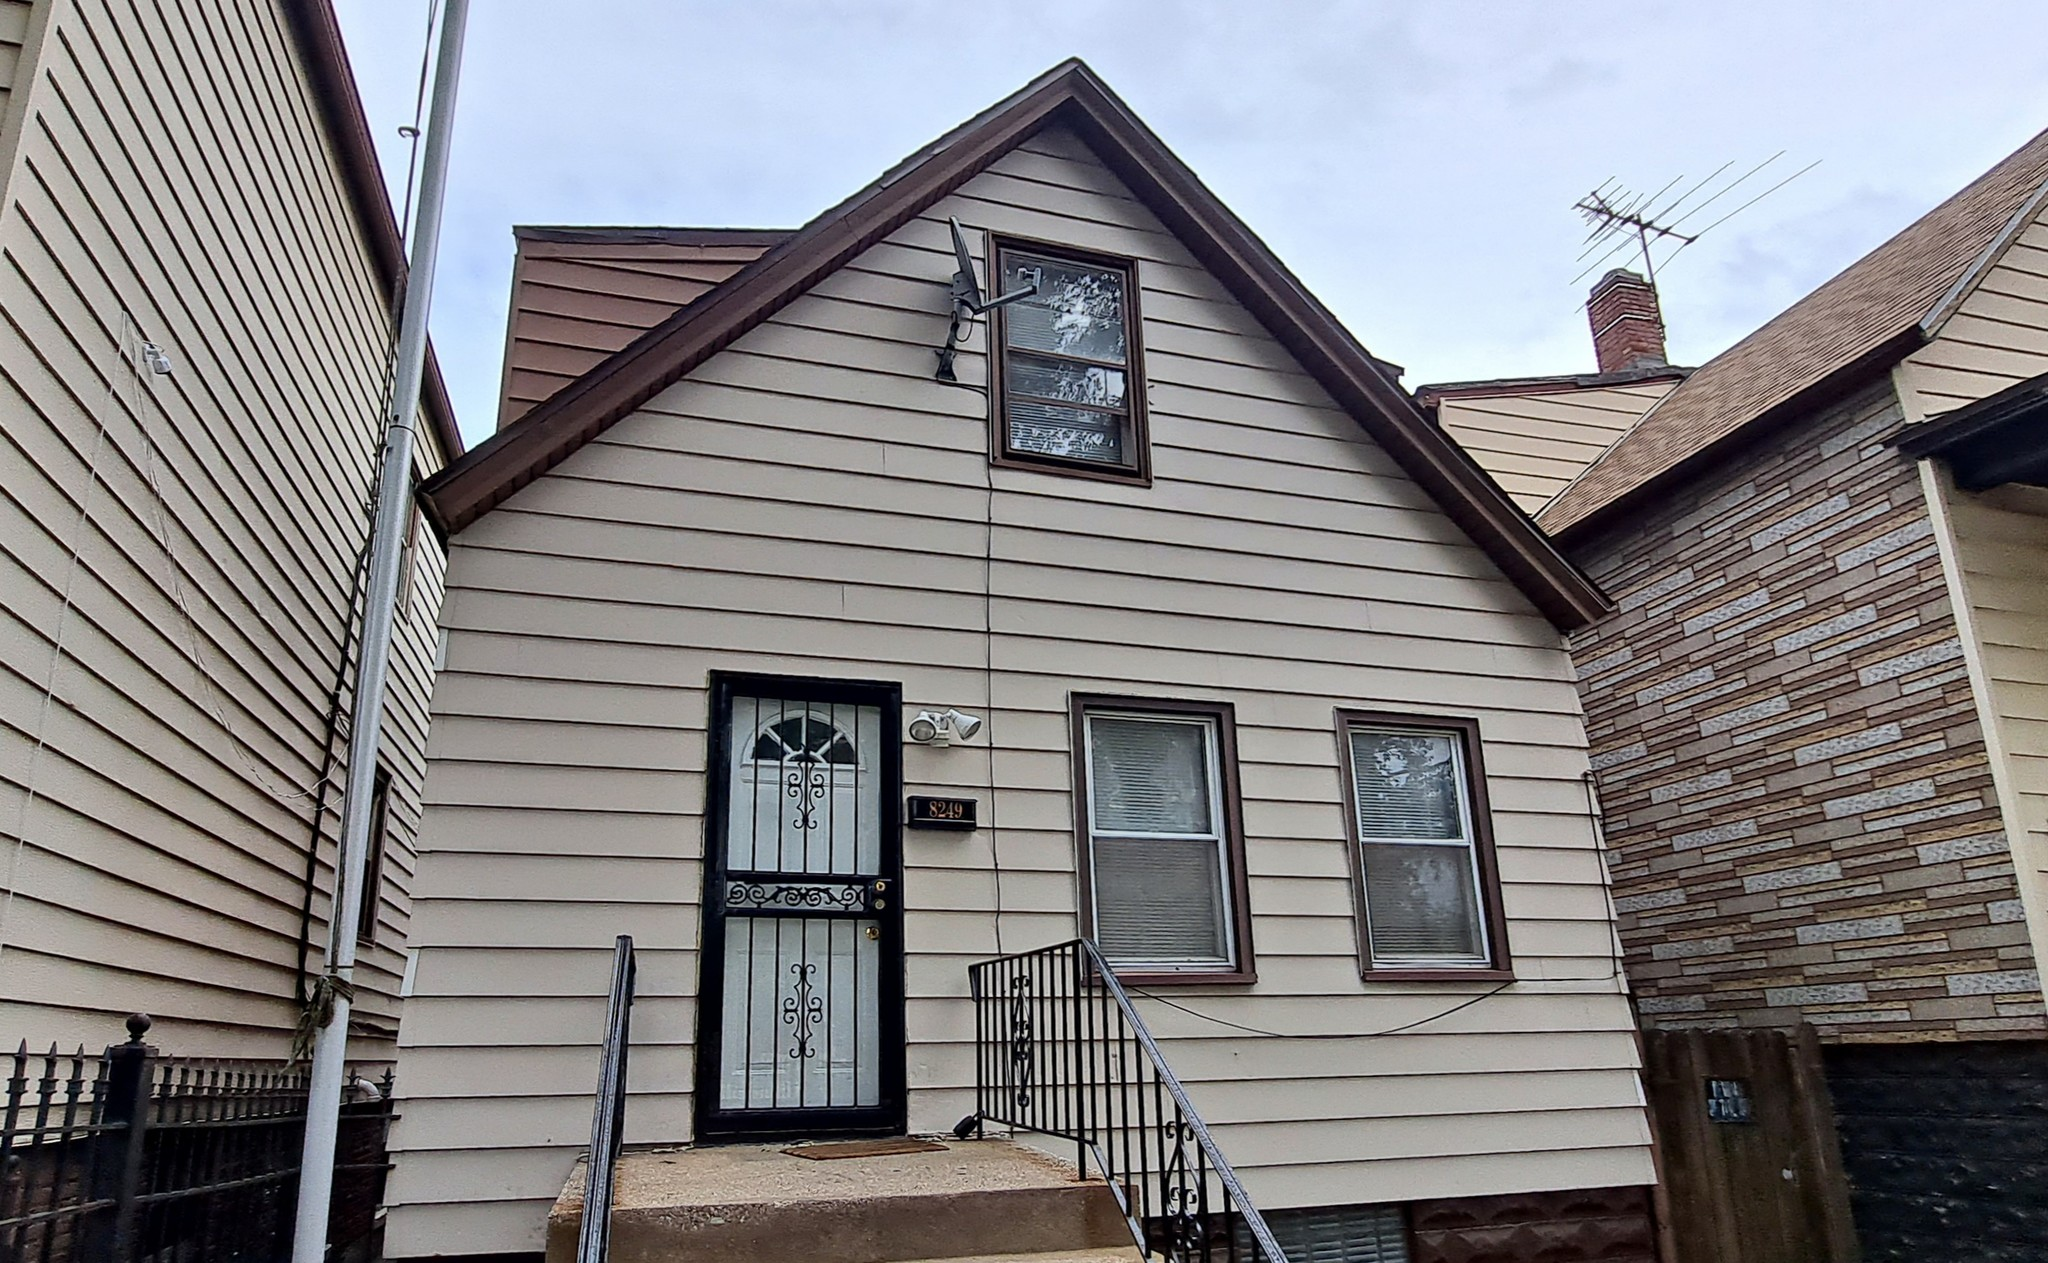 3-Bedroom House In South Chicago